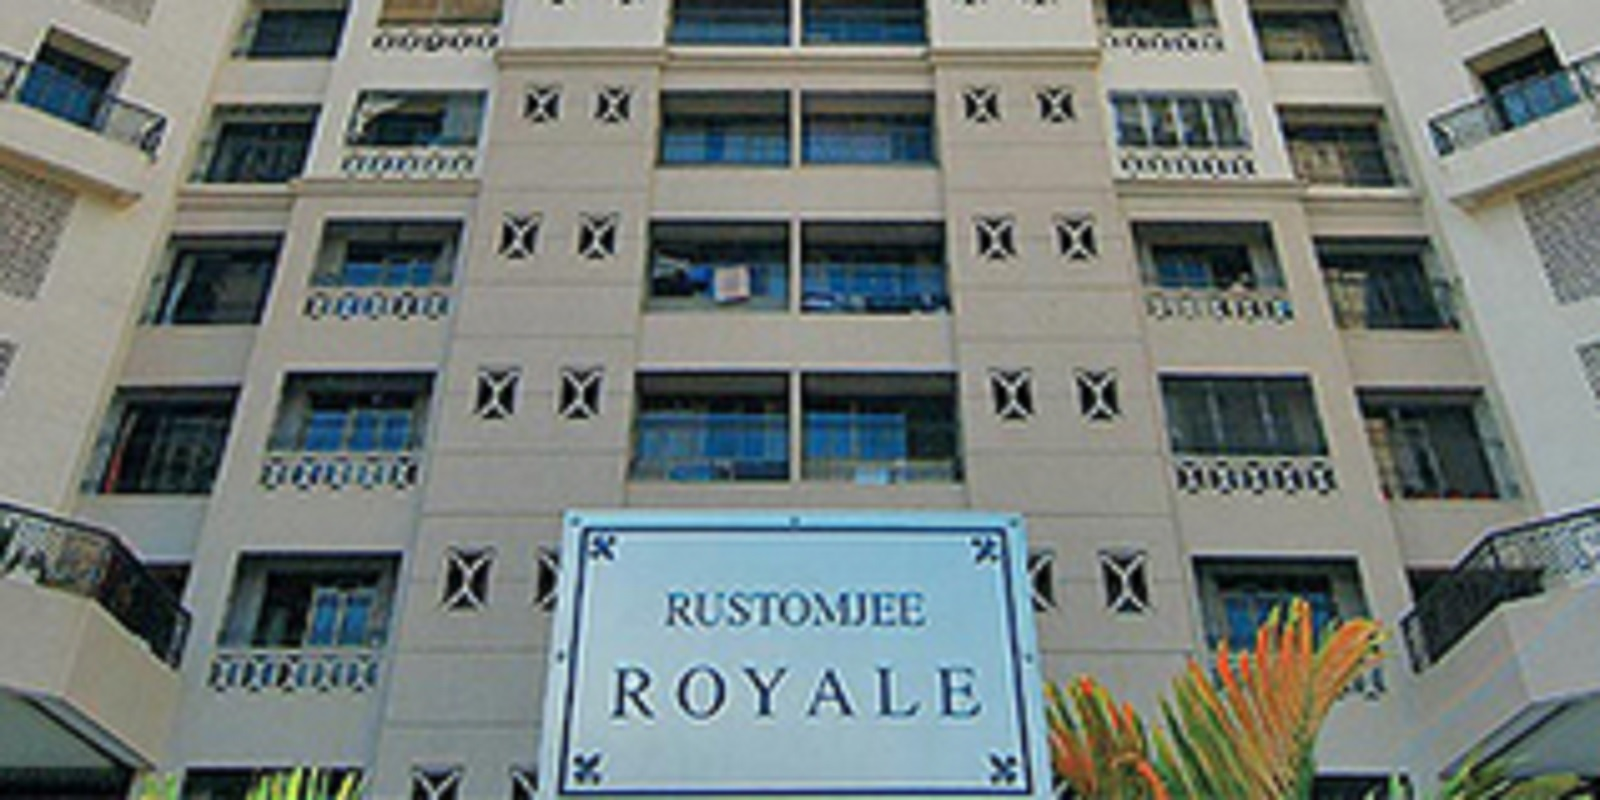 rustomjee royale project large image1